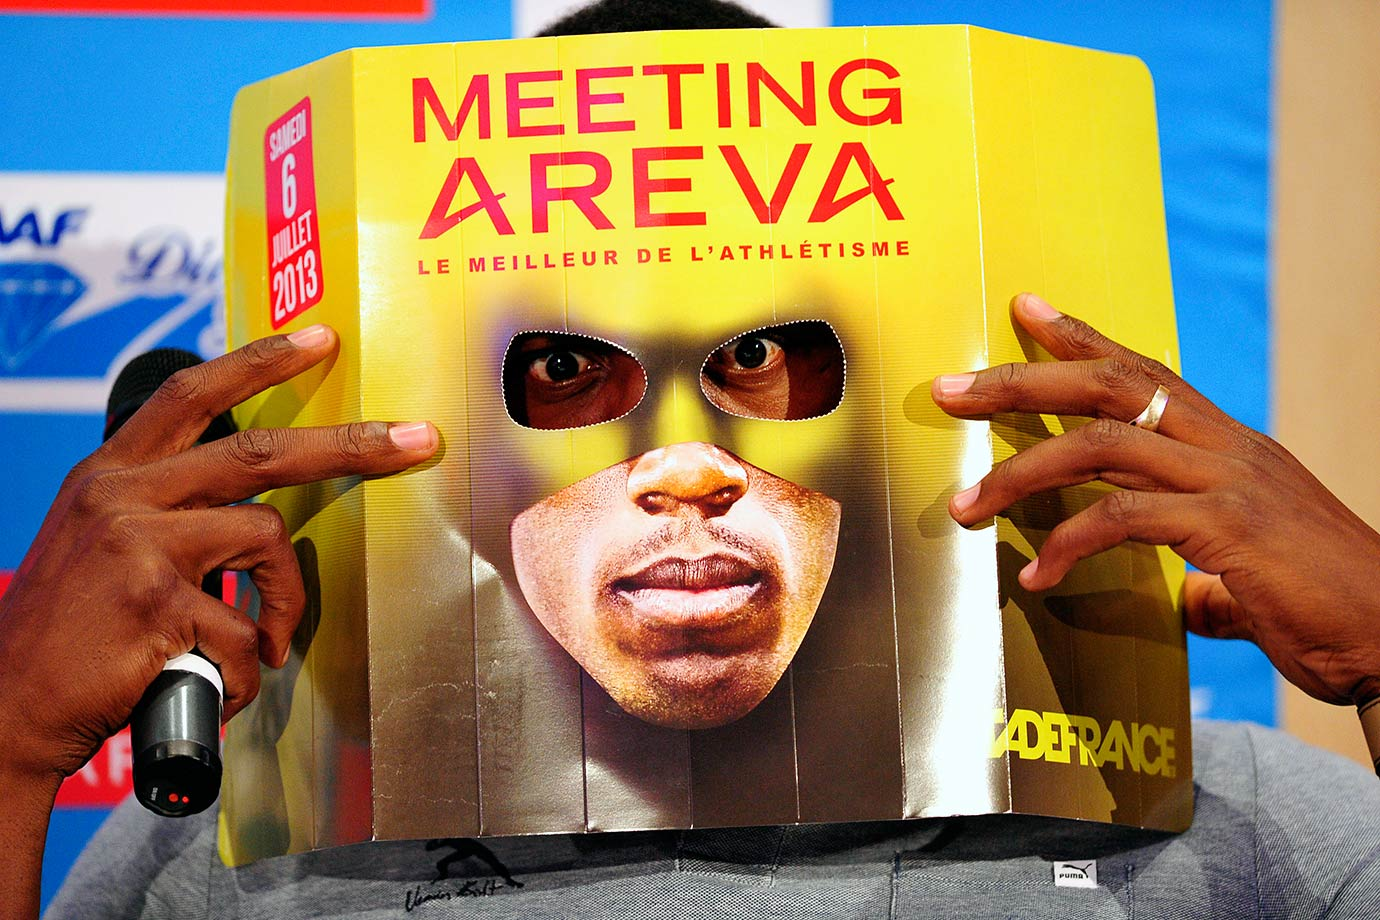 Usain Bolt looks through a leaflet displayed as a mask as he poses after a 2013 press conference in Paris.